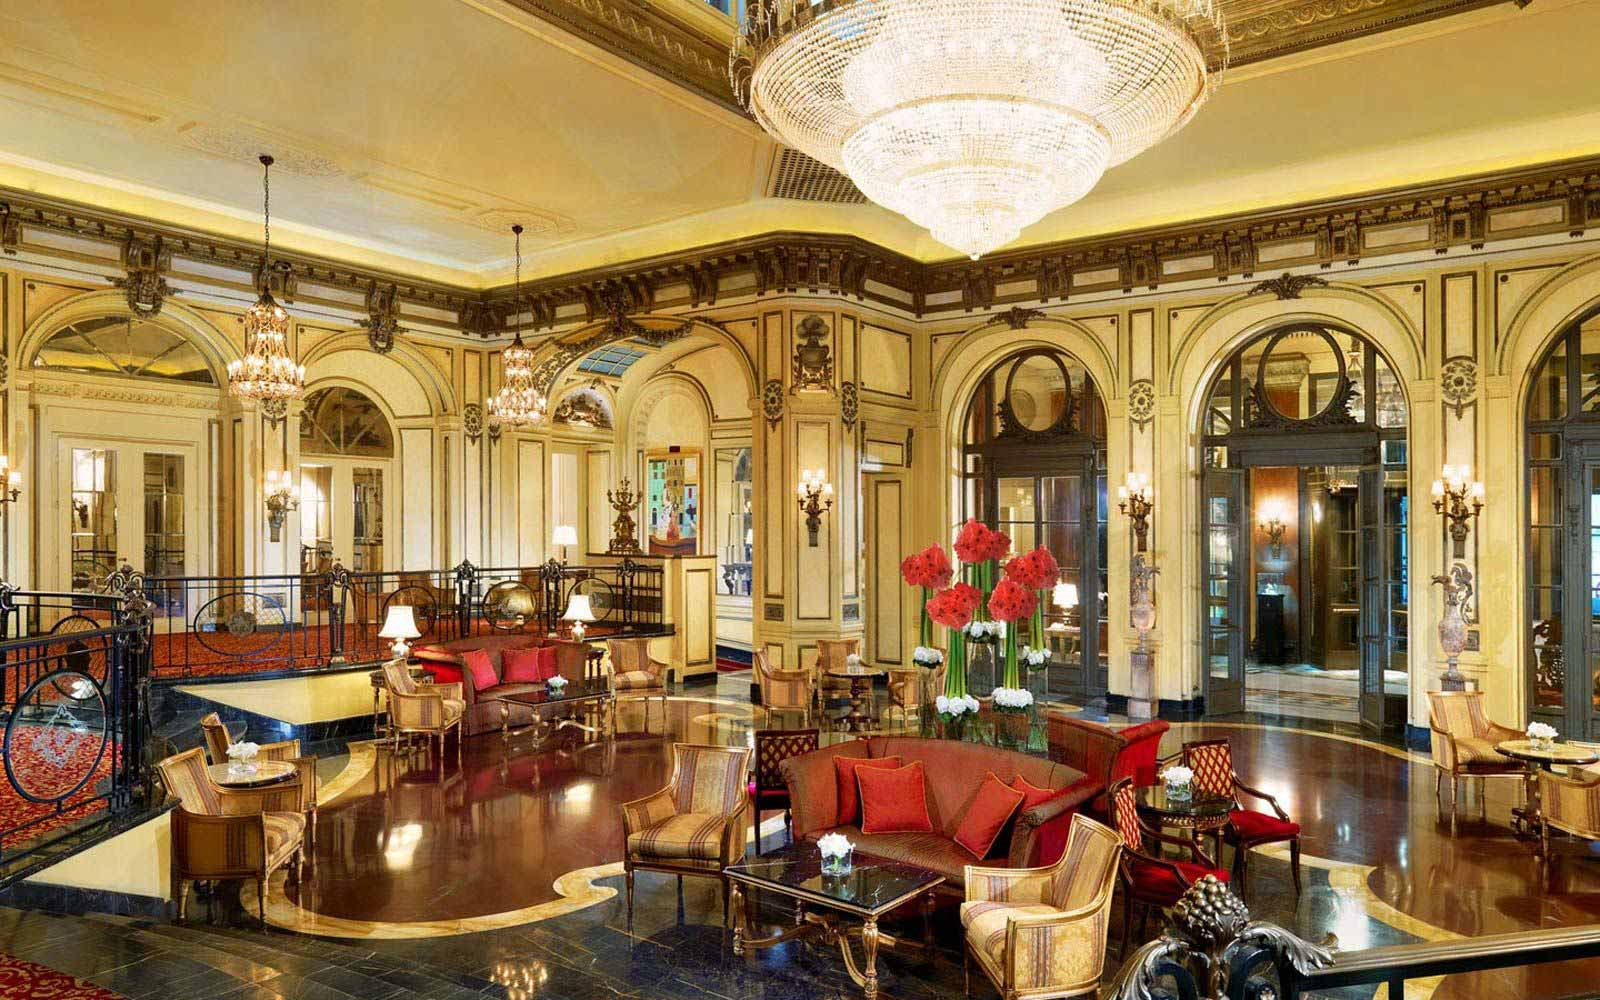 Grand Lobby at St.Regis Grand Hotel